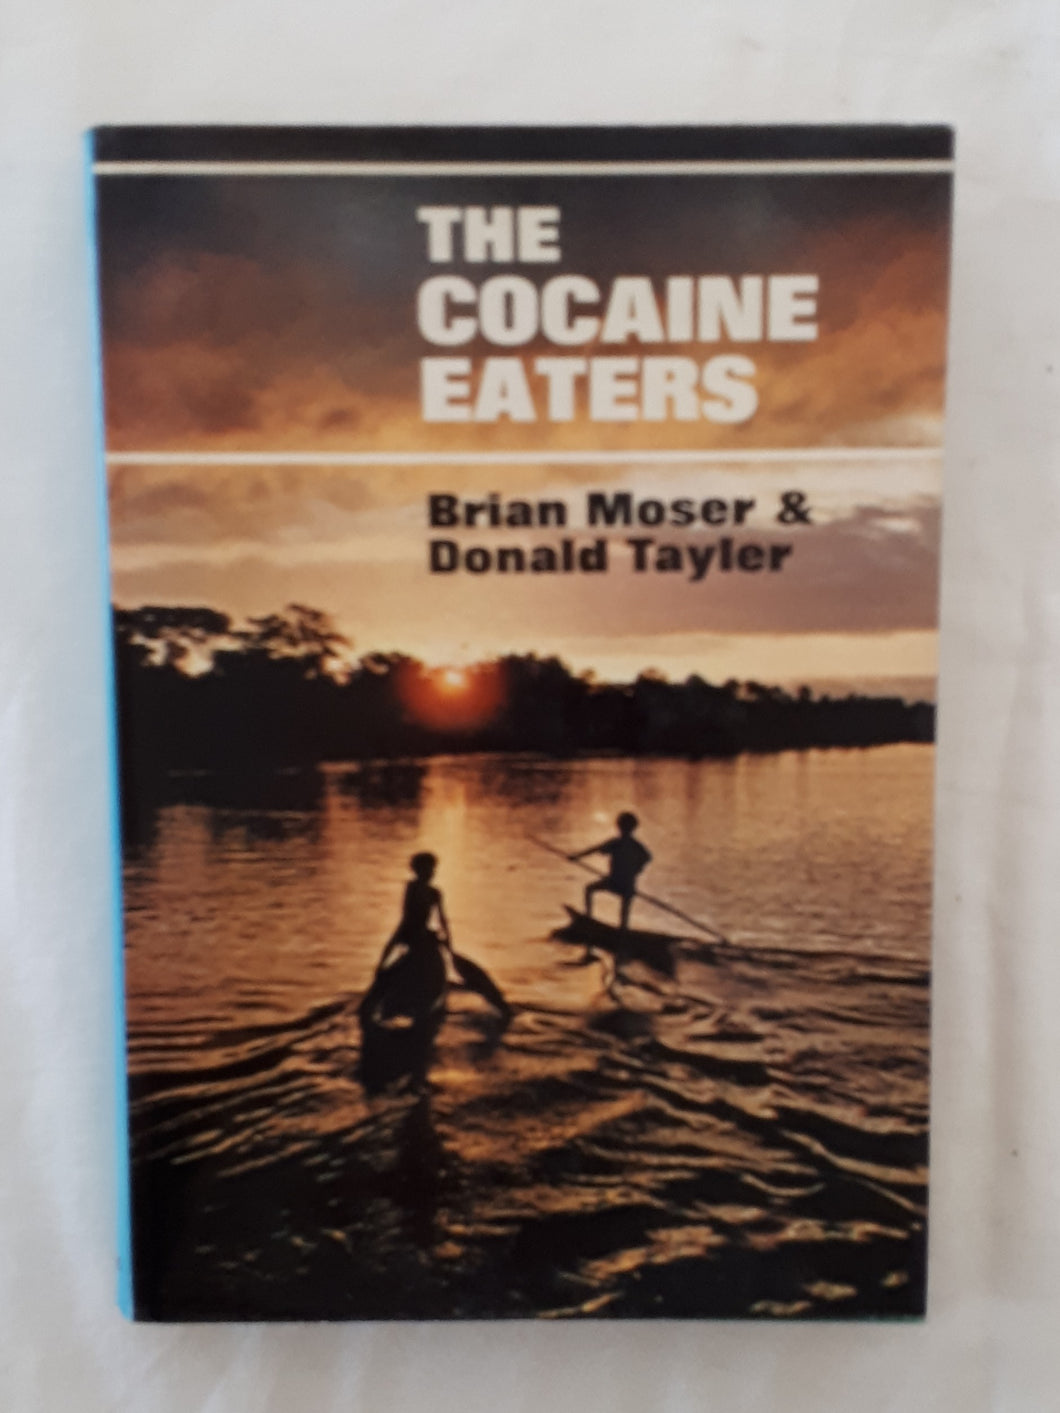 The Cocaine Eaters by Brian Moser and Donald Tayler